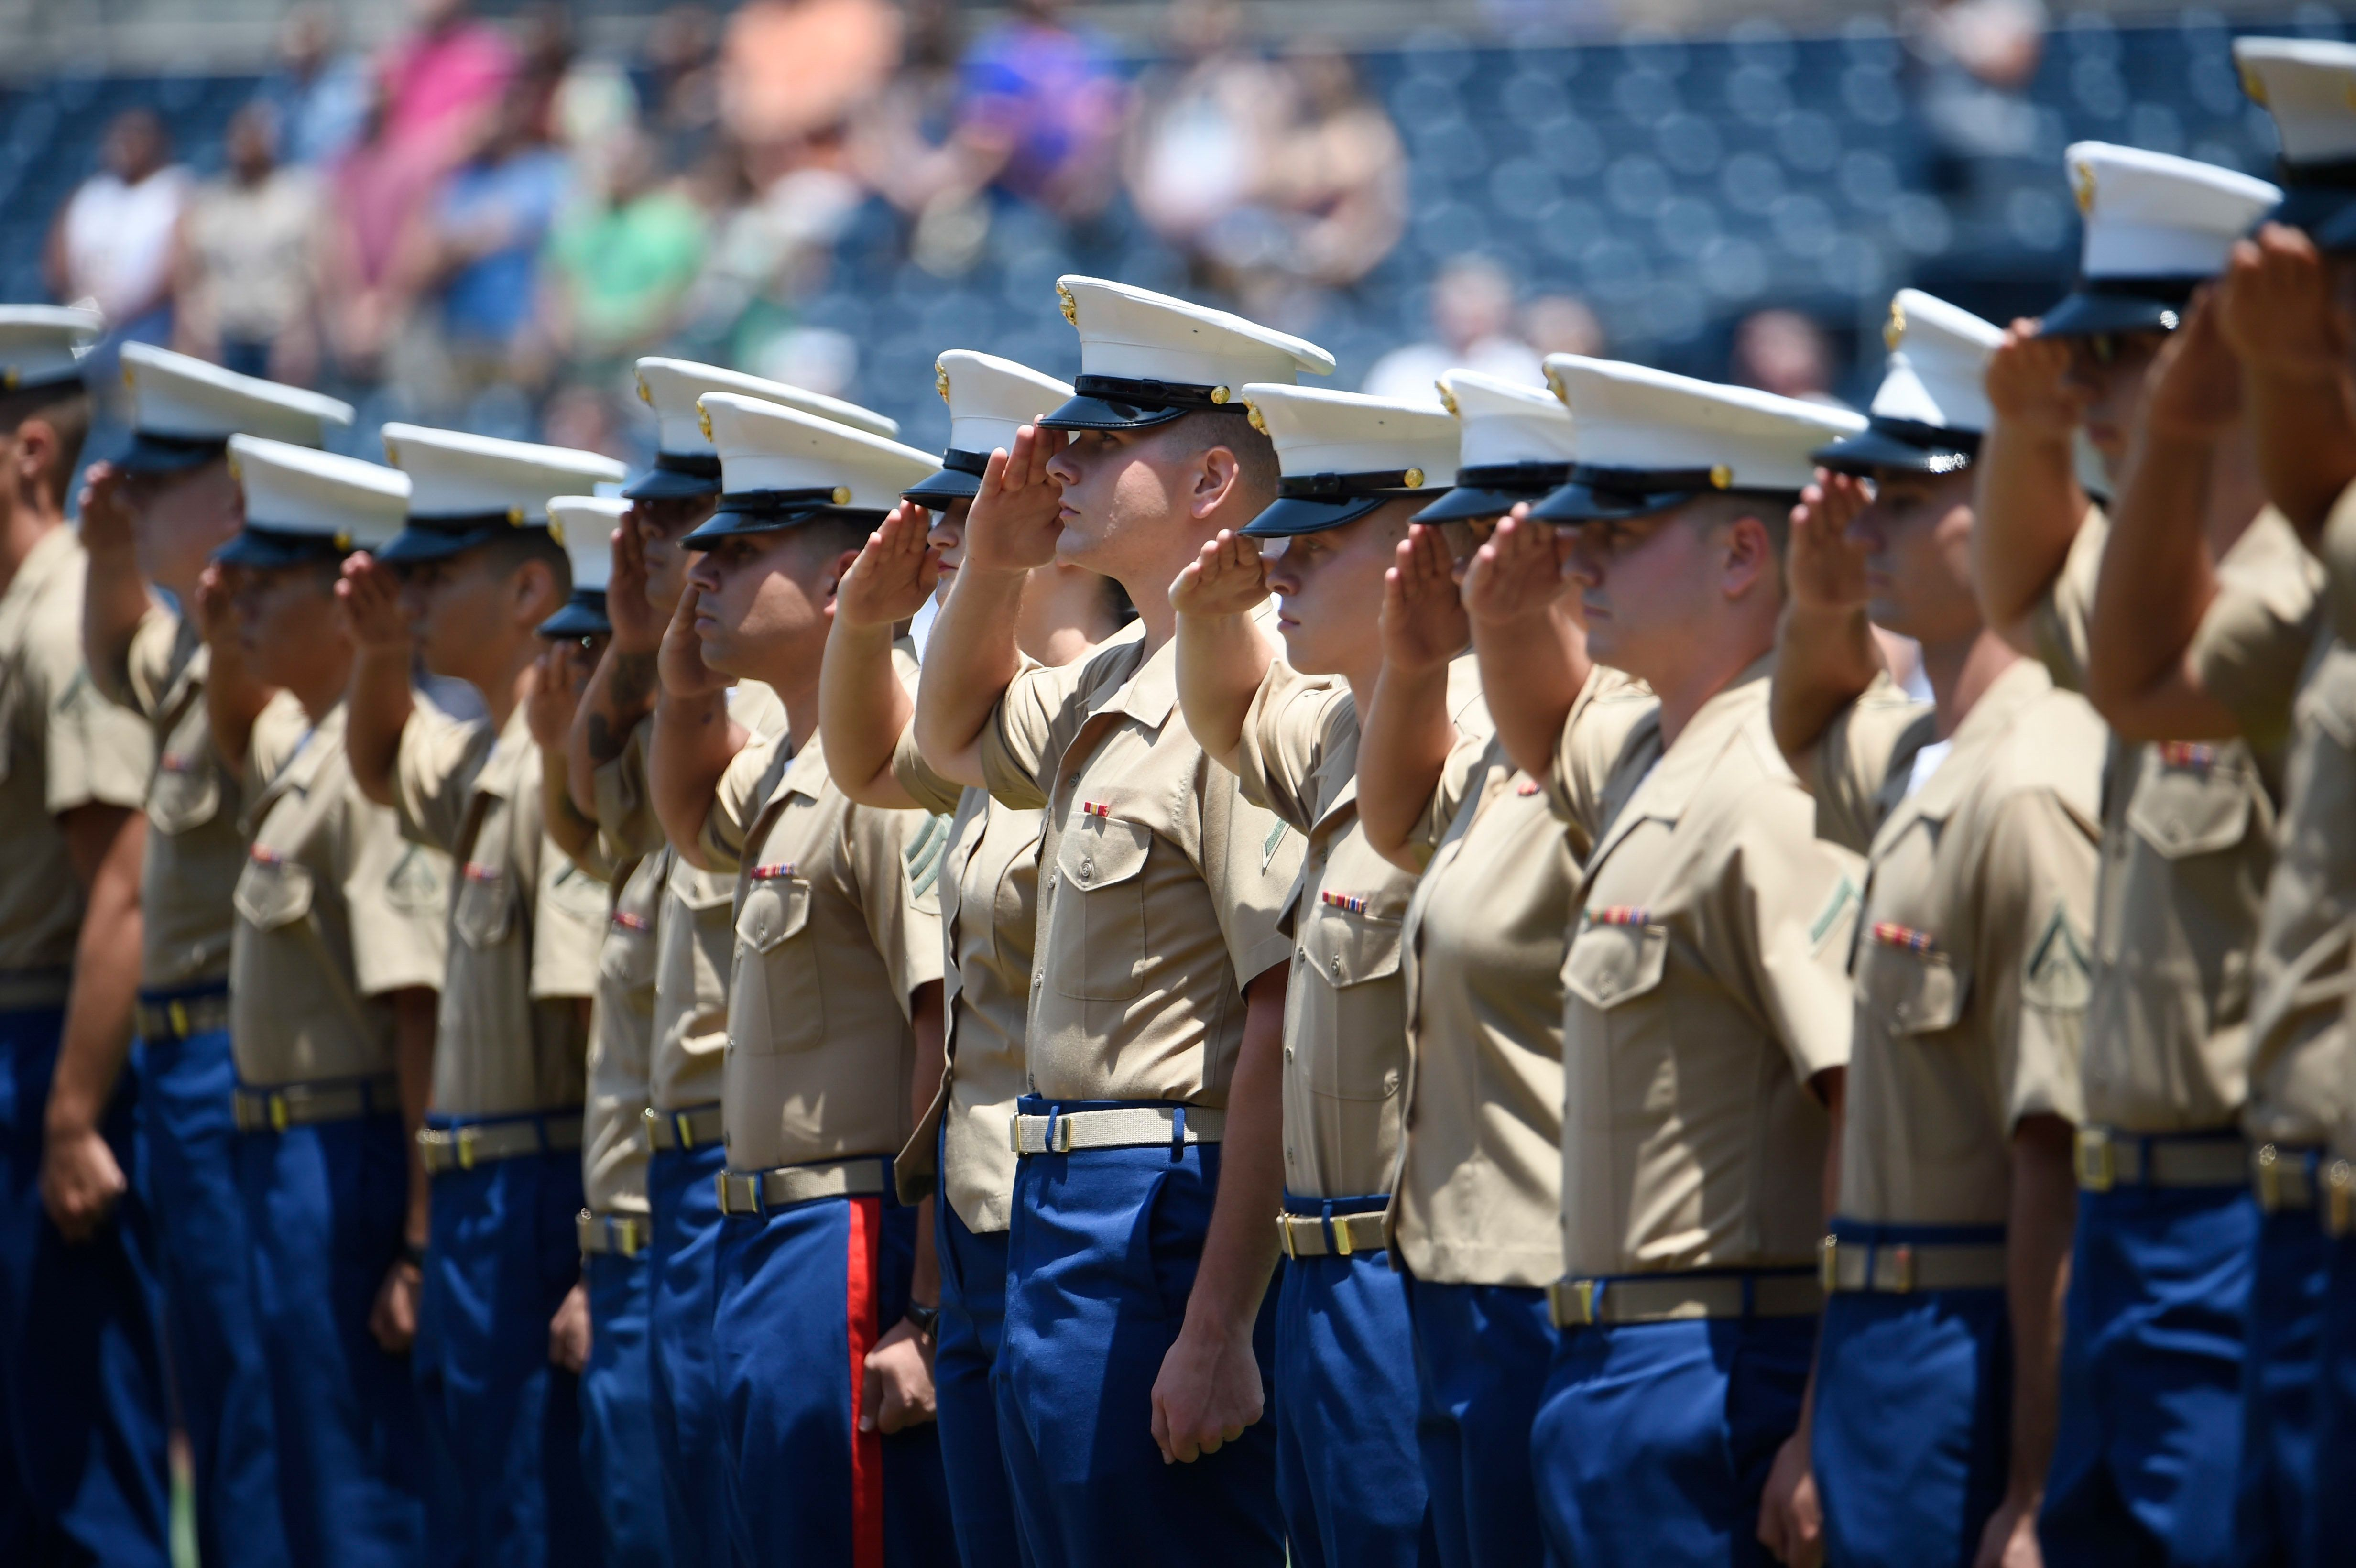 U.S. Marines salute during the national anthem before a baseball game between the San Diego Padres and the Cincinnati Reds on